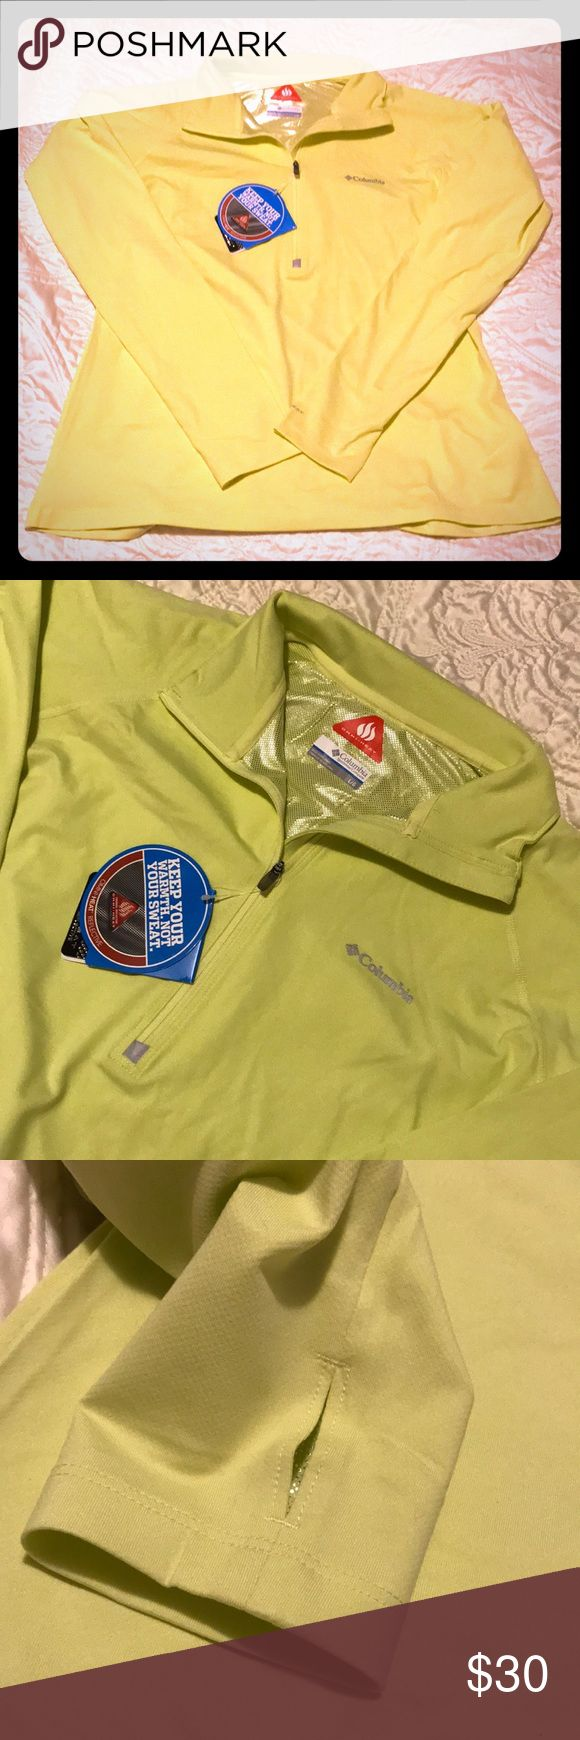 Columbia trail summit half zip long sleeve This shirts has wicking performance pullover with thermal reflectors and 4-way-comfort-stretch fabric. Size large fits true to size. New with tags. This shirt is a very light neon yellow and does look a little yellow green in some lights. FEATURES: Active Fit Reflective detail 4-way comfort stretch Flatlocked construction Omni-Heat™ thermal reflective Omni-Wick™ Thumb holes Columbia Tops Tees - Long Sleeve